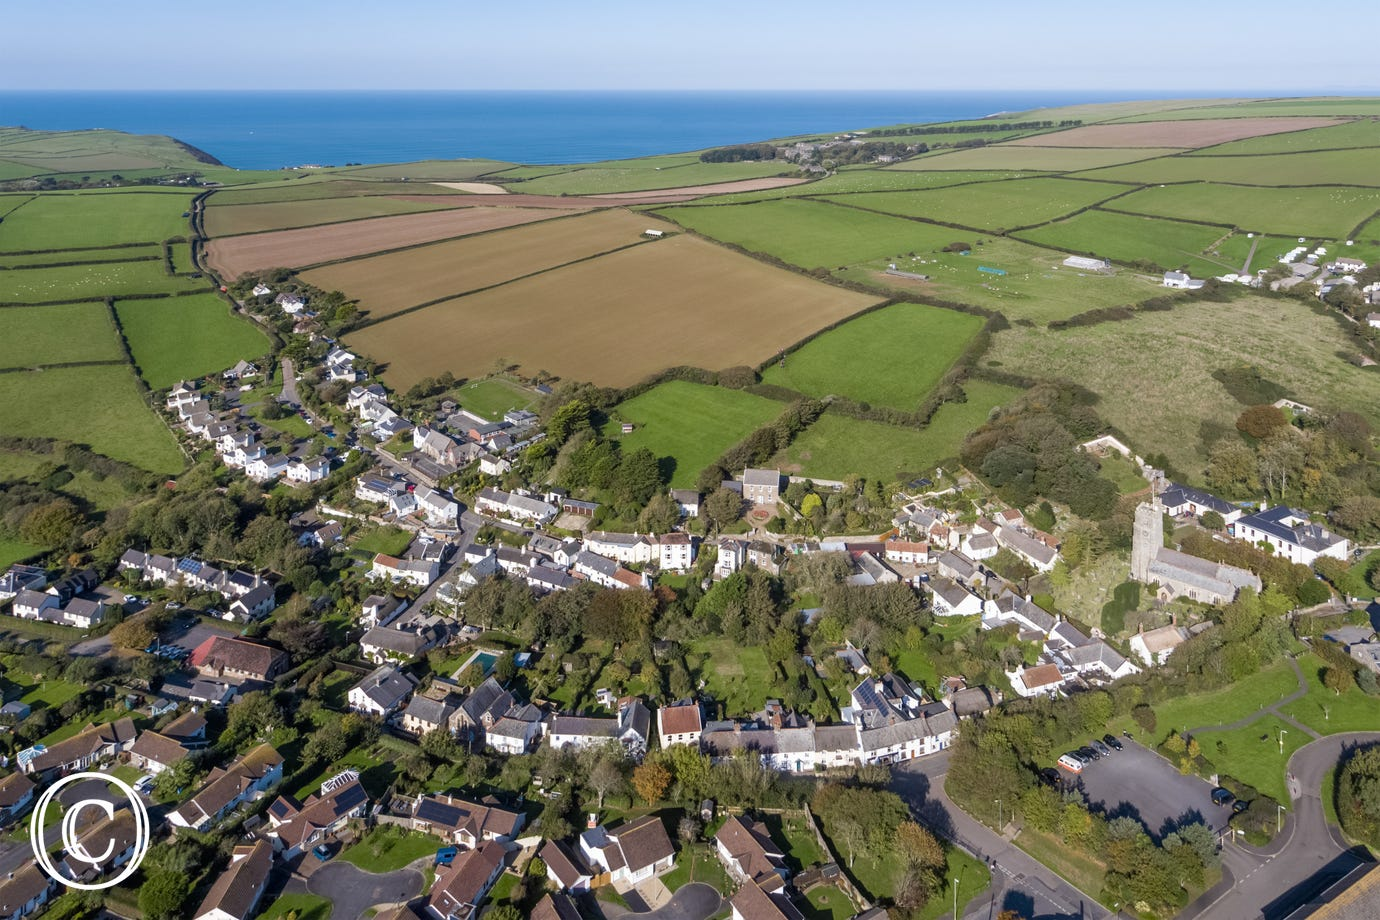 Georgeham is a picturesque North Devon village with two popular pubs and just a short drive to the famous surfing beaches of Putsborough and Croyde